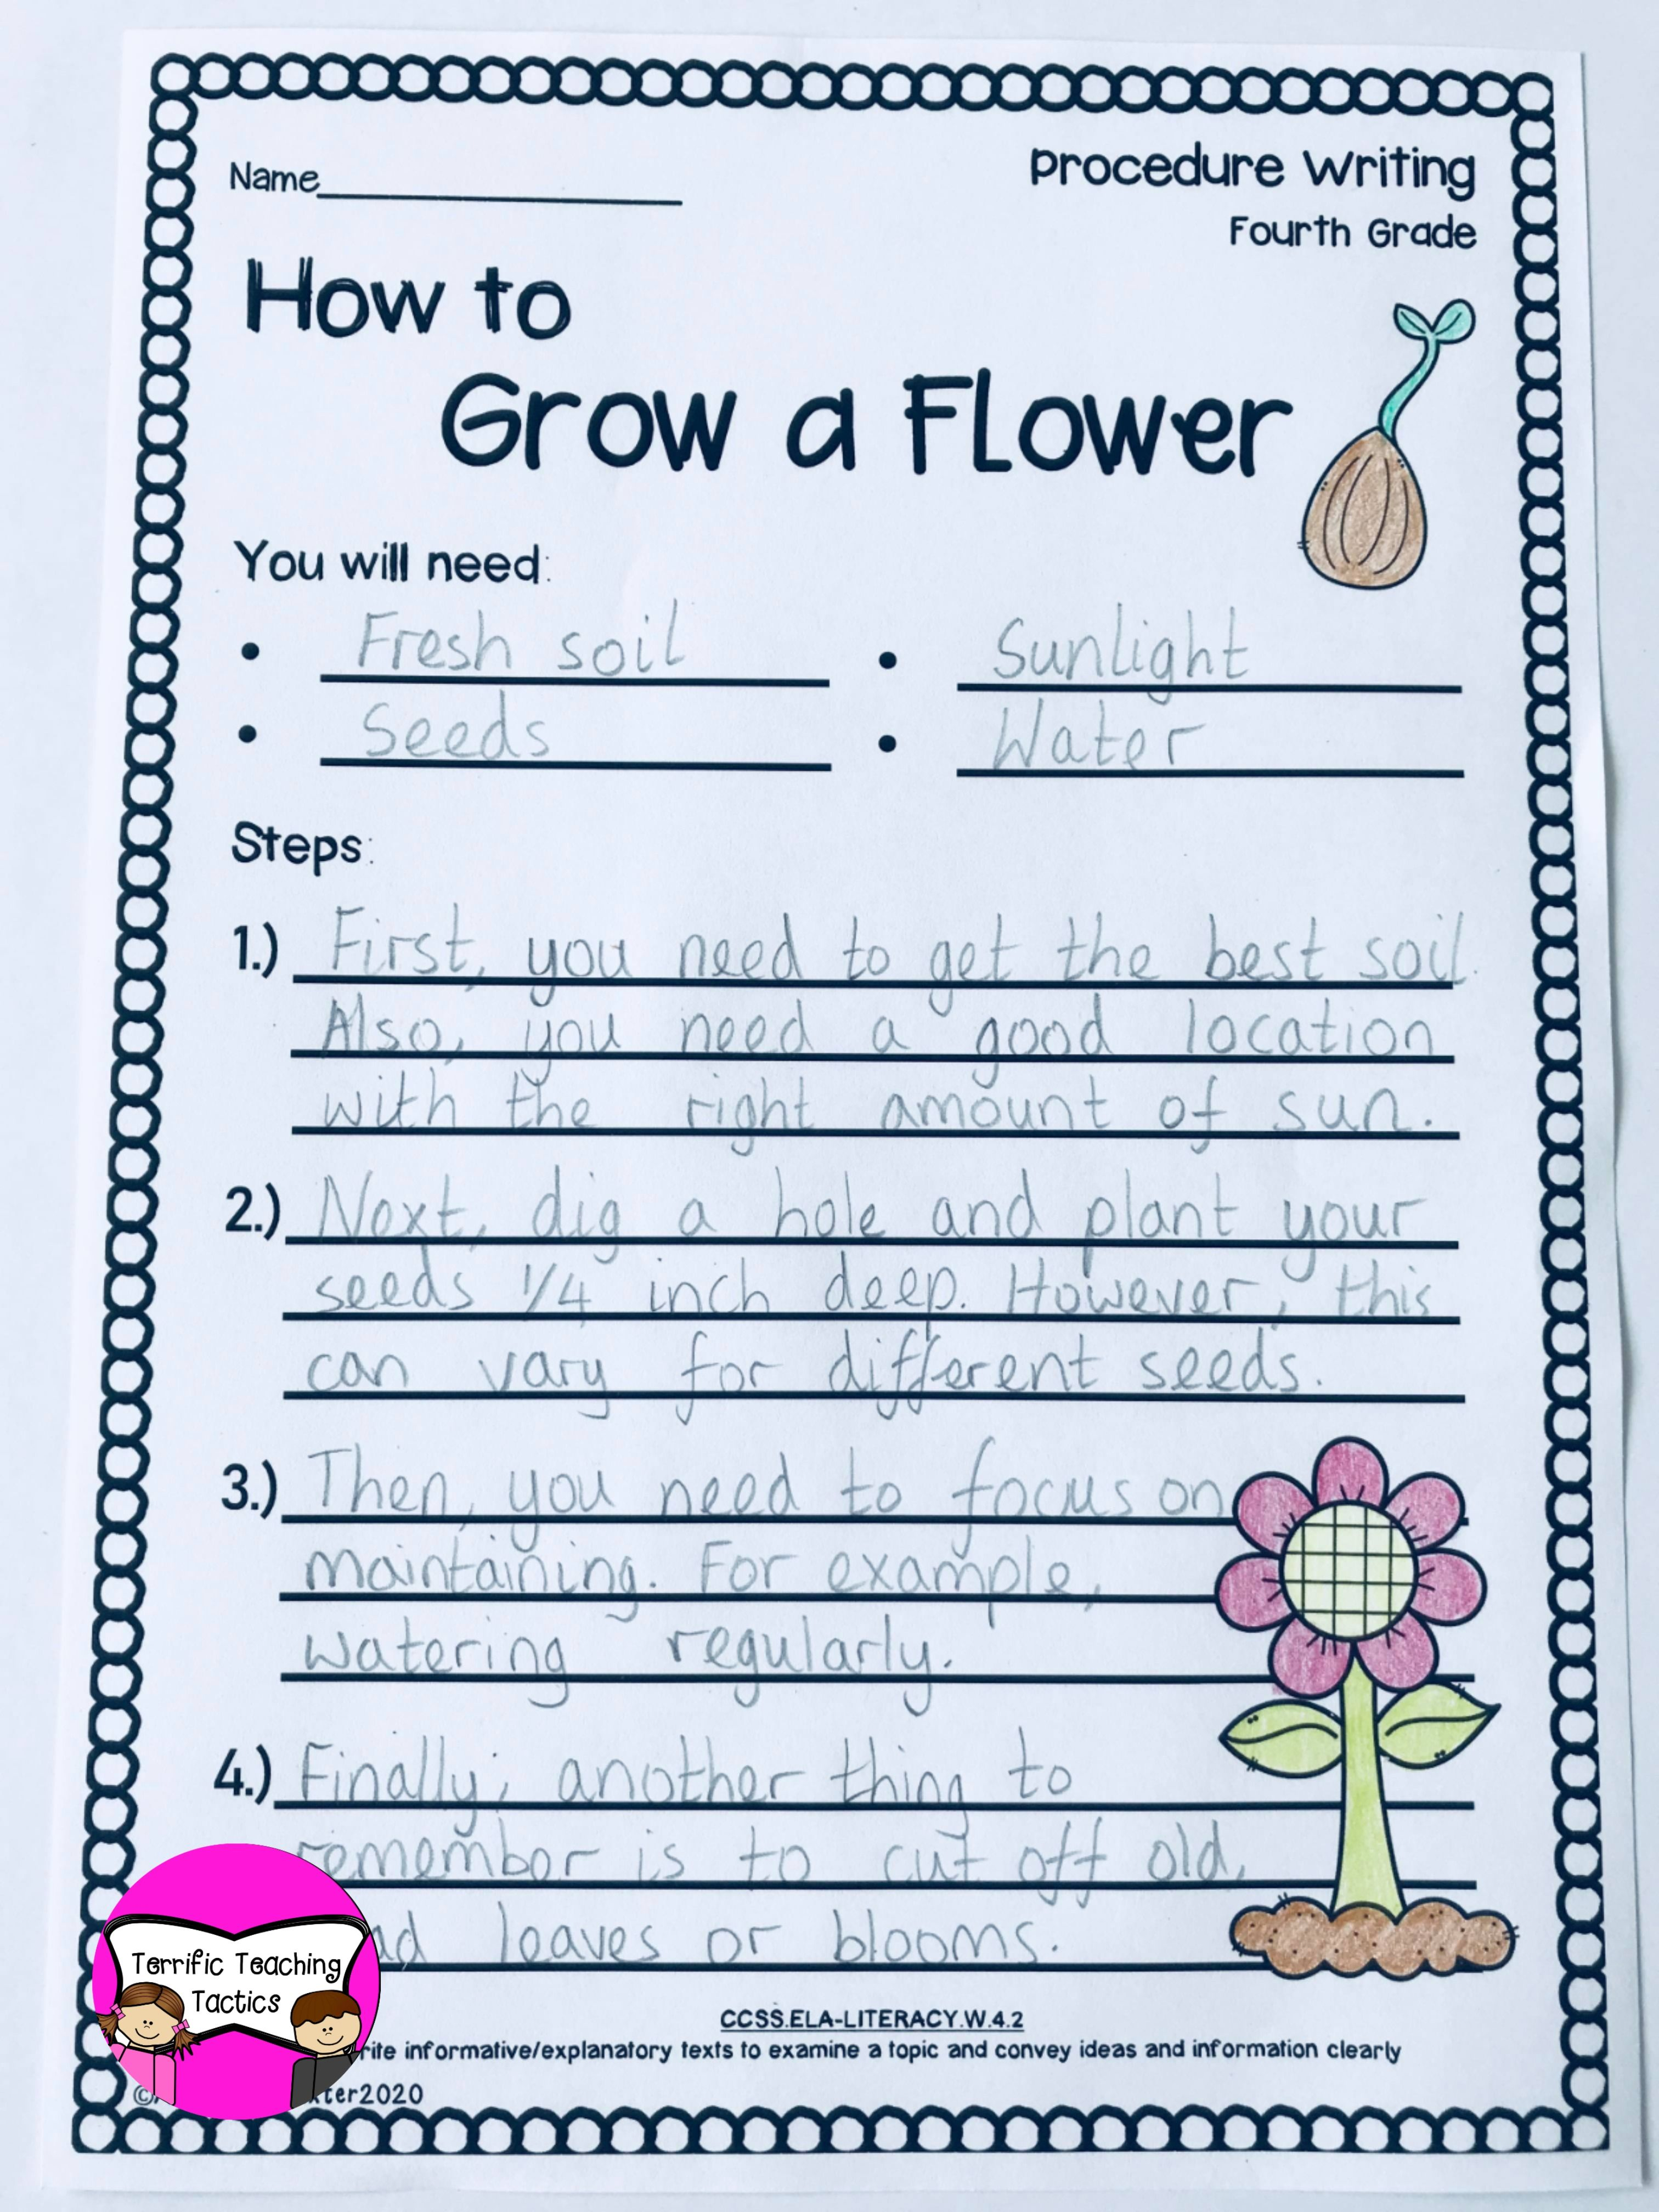 hight resolution of How To Grow a Flower Worksheet   Procedural writing